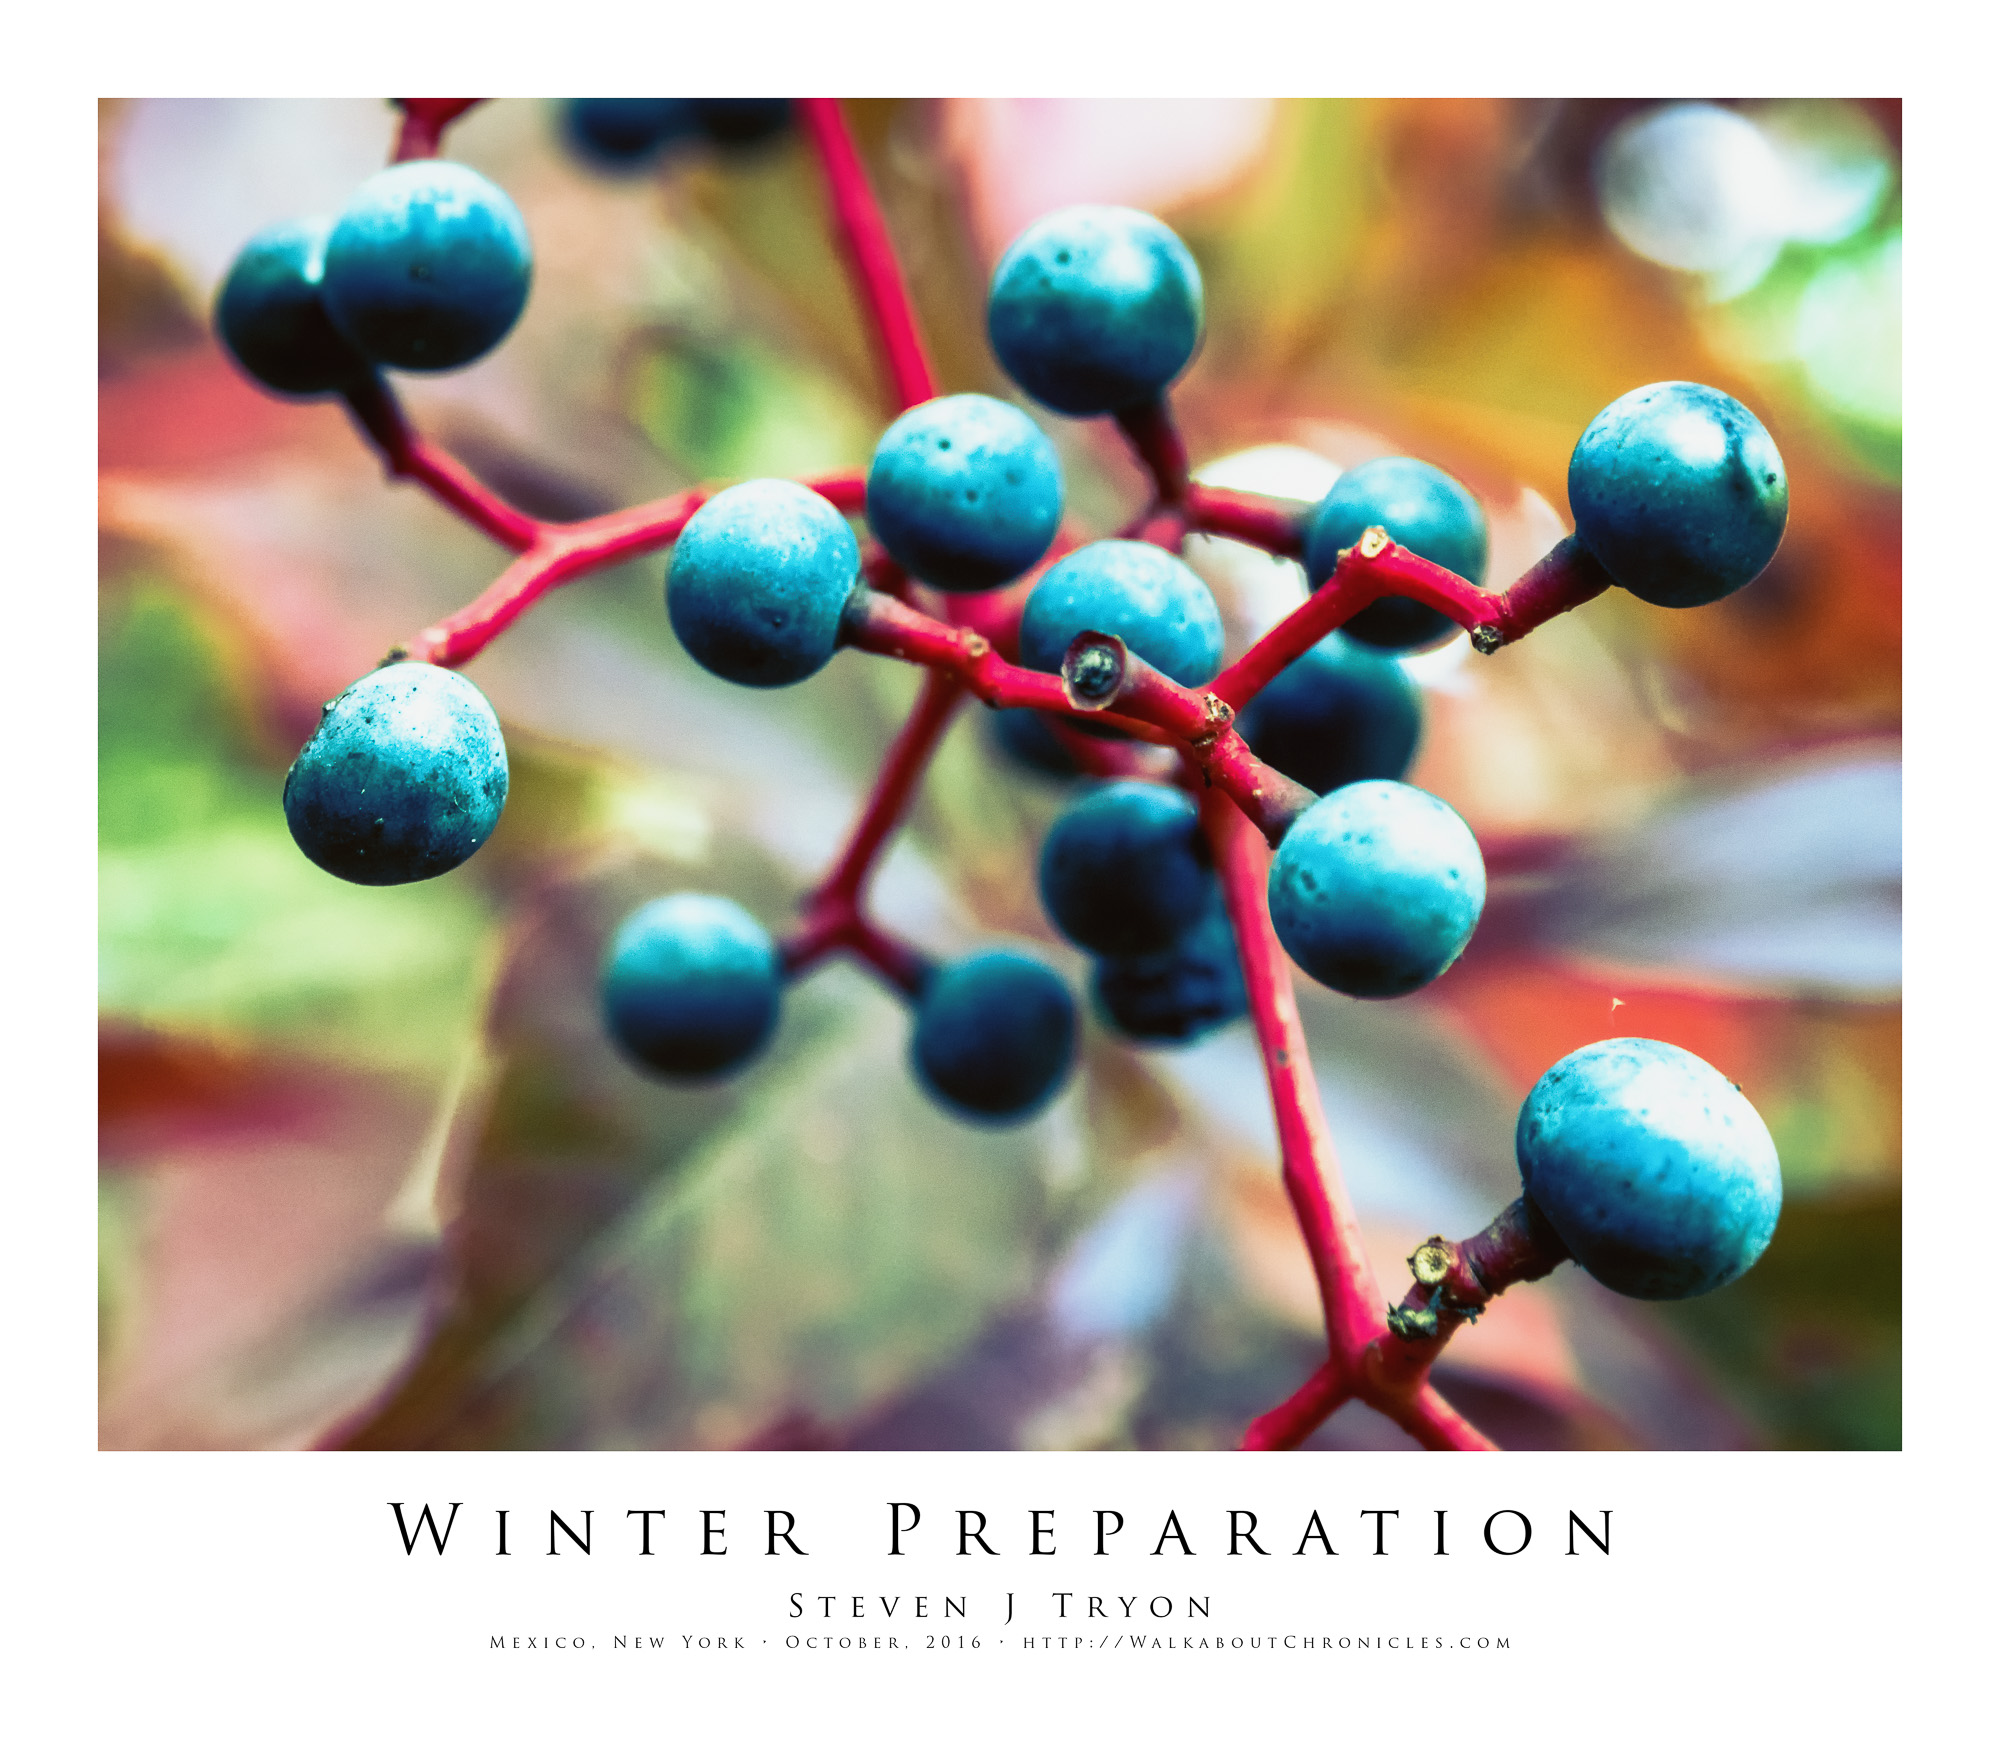 Winter Preparation